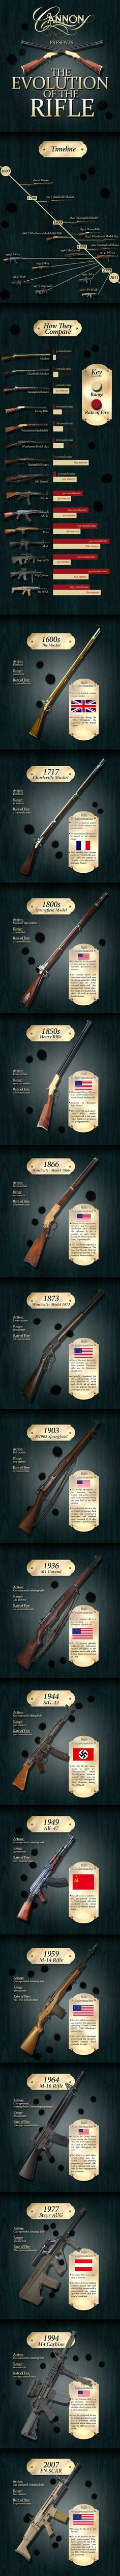 the Evolution of the Rifle